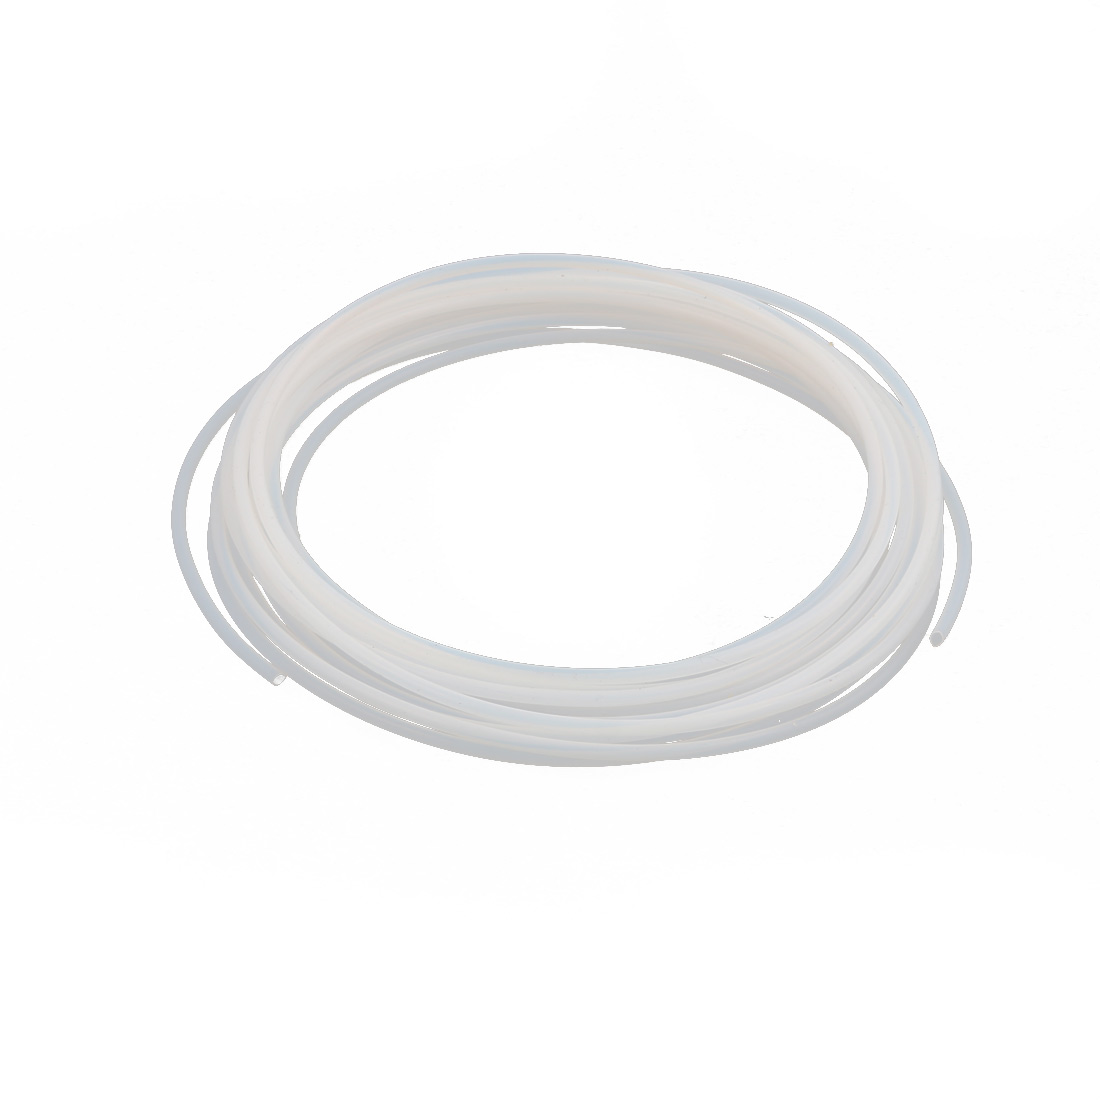 2.16mmx2.56mm PTFE Resistant High Temperature Transparent Tubing 5Meters 16.4Ft